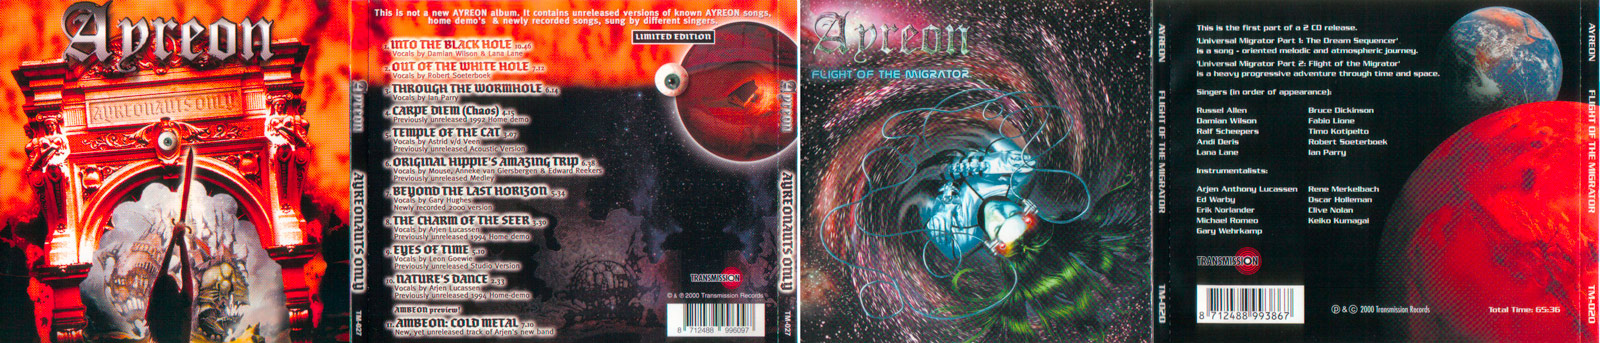 Ayreon CD covers